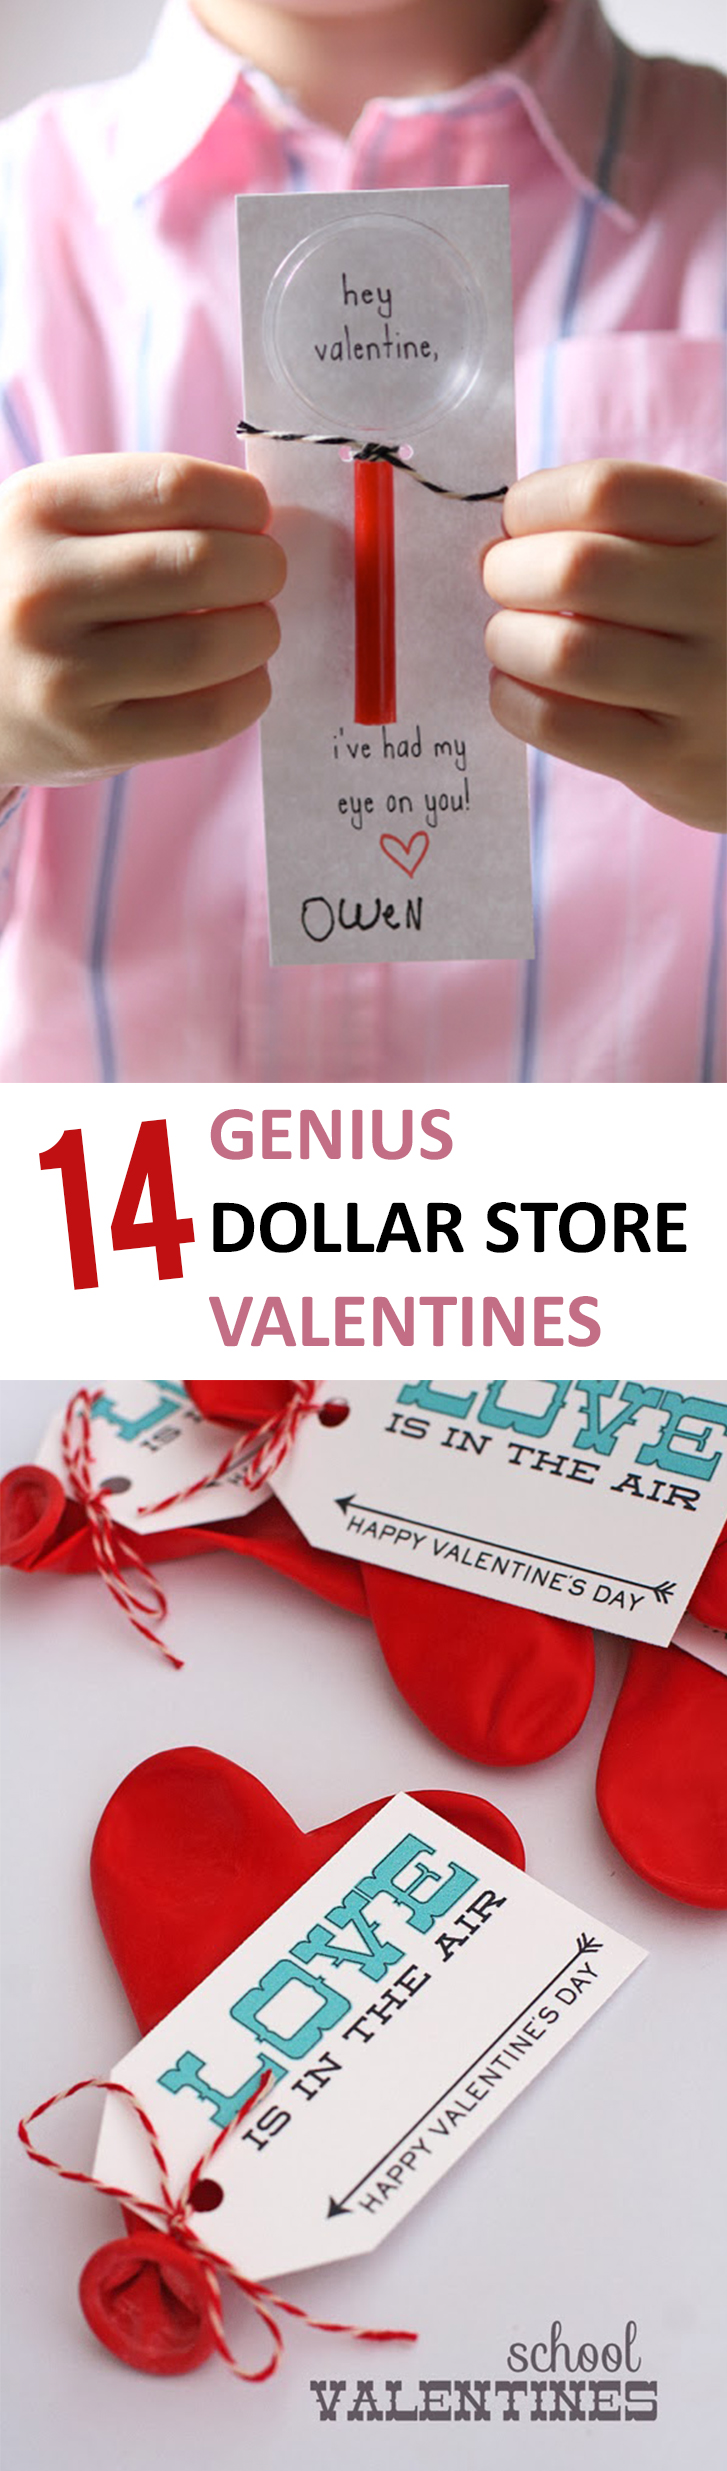 Dollar Store Valentines Ideas, Valentines Day Ideas from the Dollar Store, Cheap Classroom Valentines, Valentines Day Decor Ideas, Valentines Day Decor Hacks, Dollar Store Valentines, Valentines Day Treat Ideas